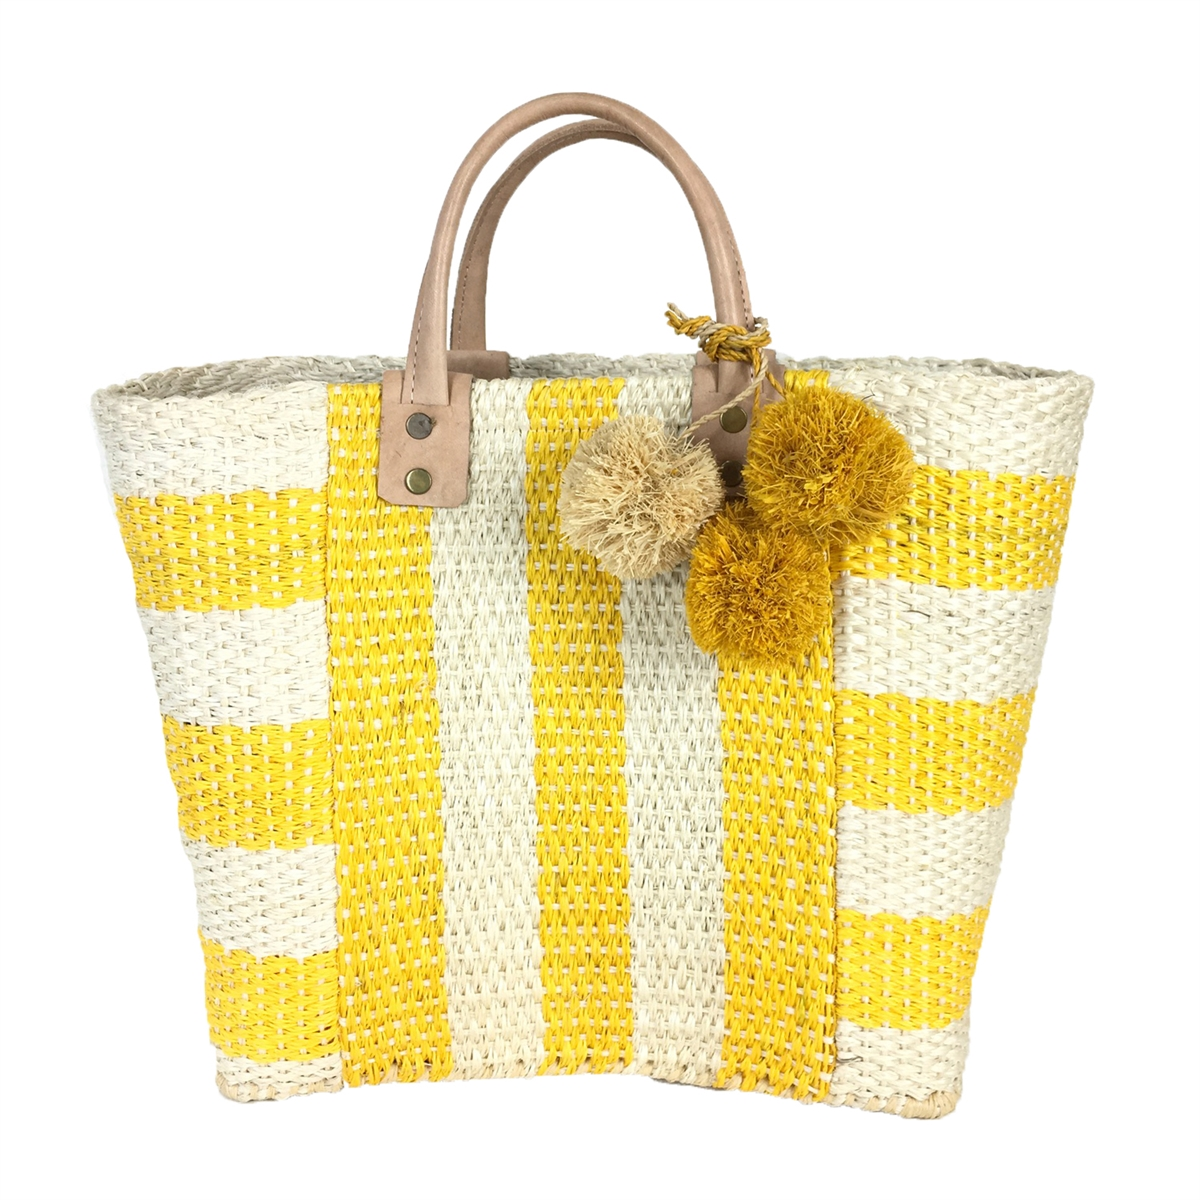 Mar Y Sol Collins Striped Woven Sisal Basket Tote Bag, Sunflower Yellow